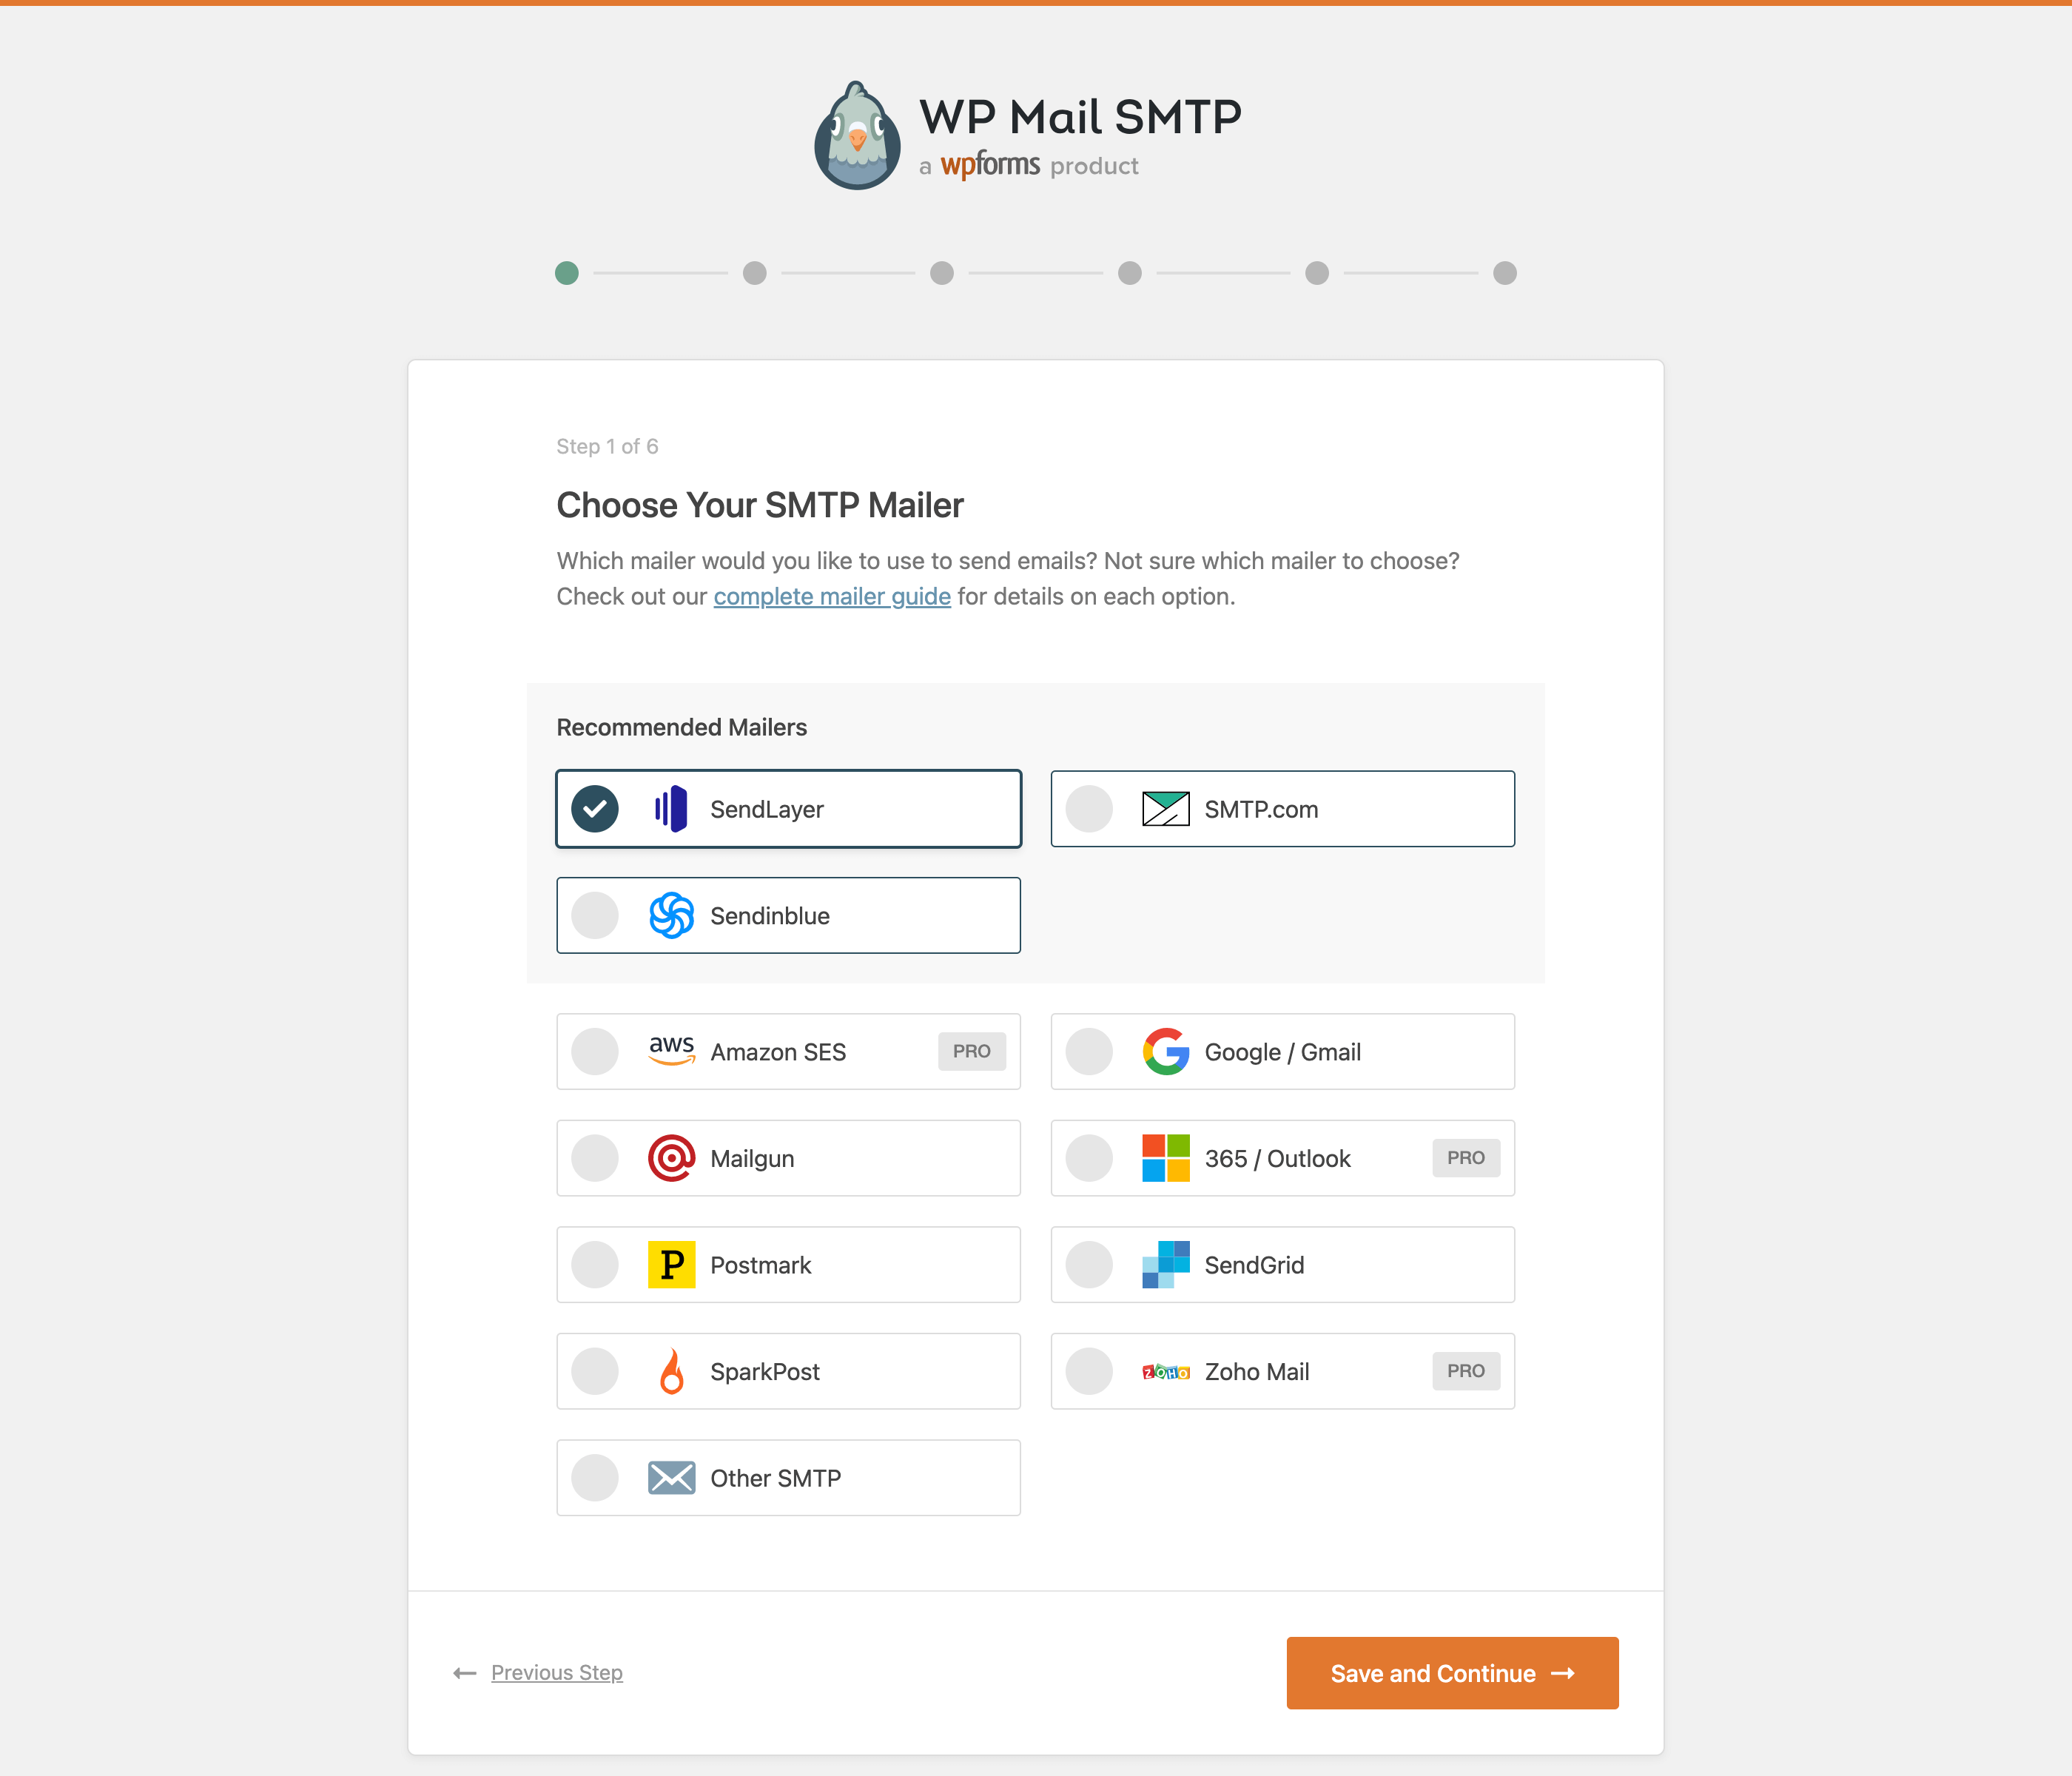 Setup Wizard - Select your mailer